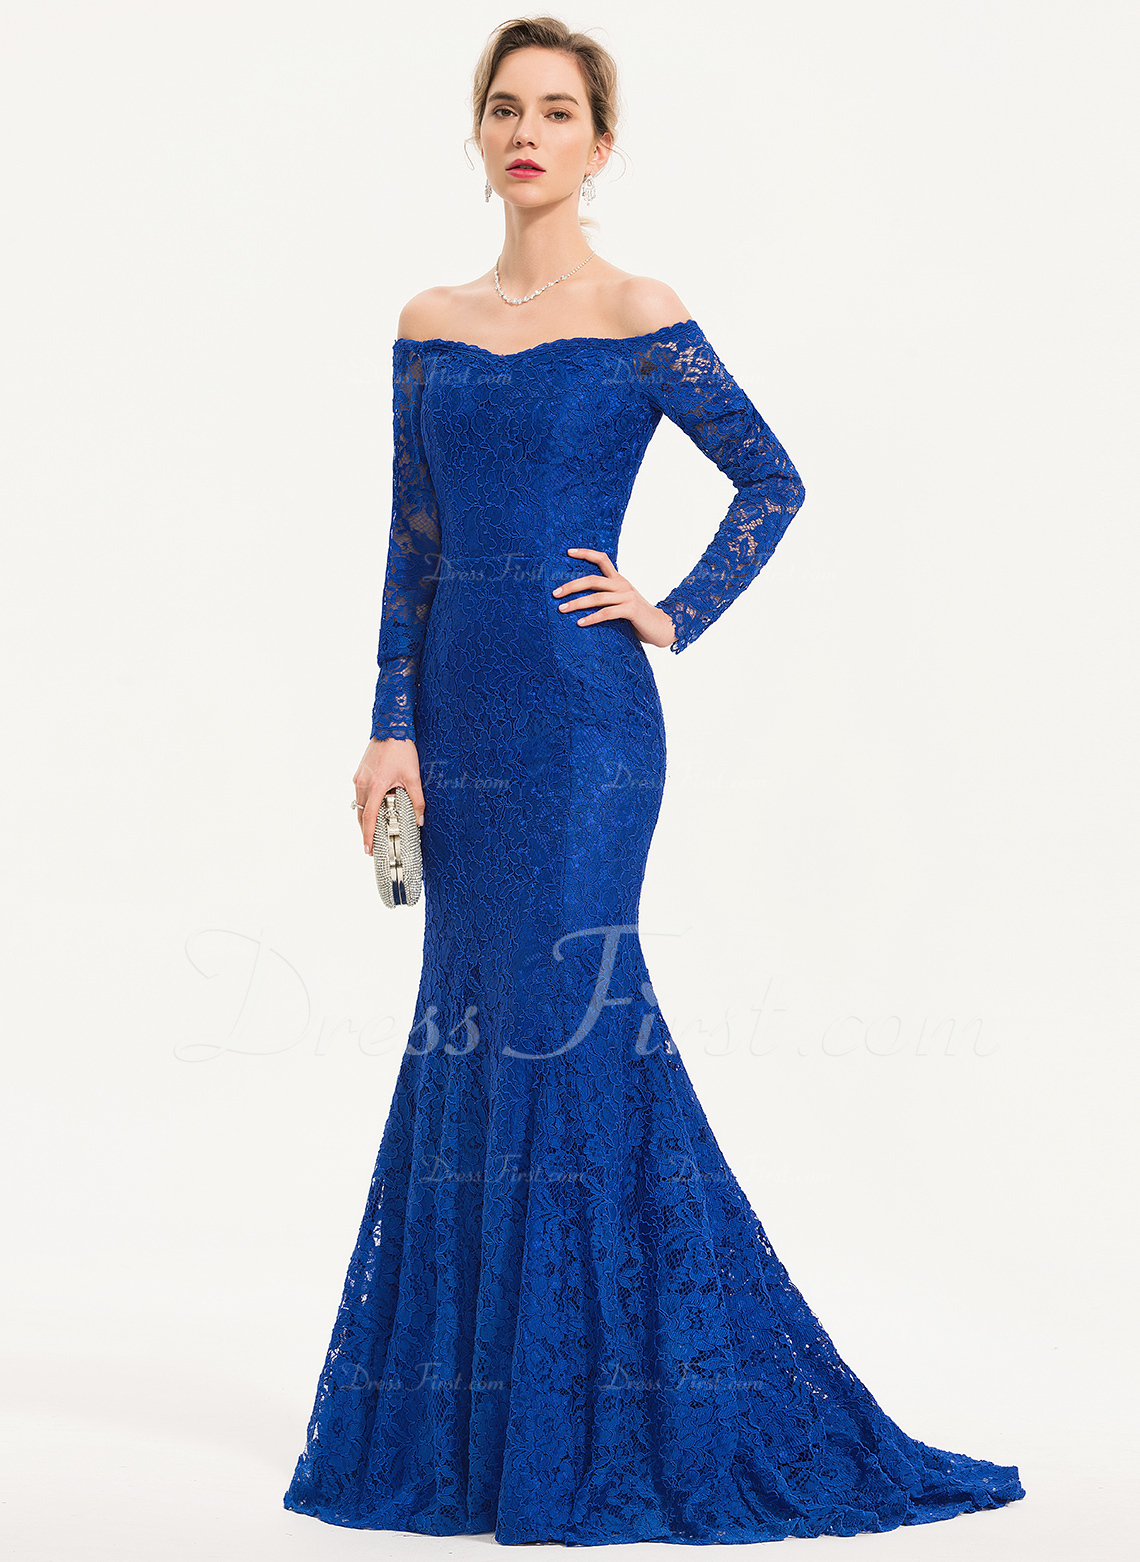 1ae992ea2f24 Evening Dresses; #186150. Loading zoom. Loading. Color: Royal Blue. Trumpet/Mermaid  Off-the-Shoulder Sweep Train Lace ...